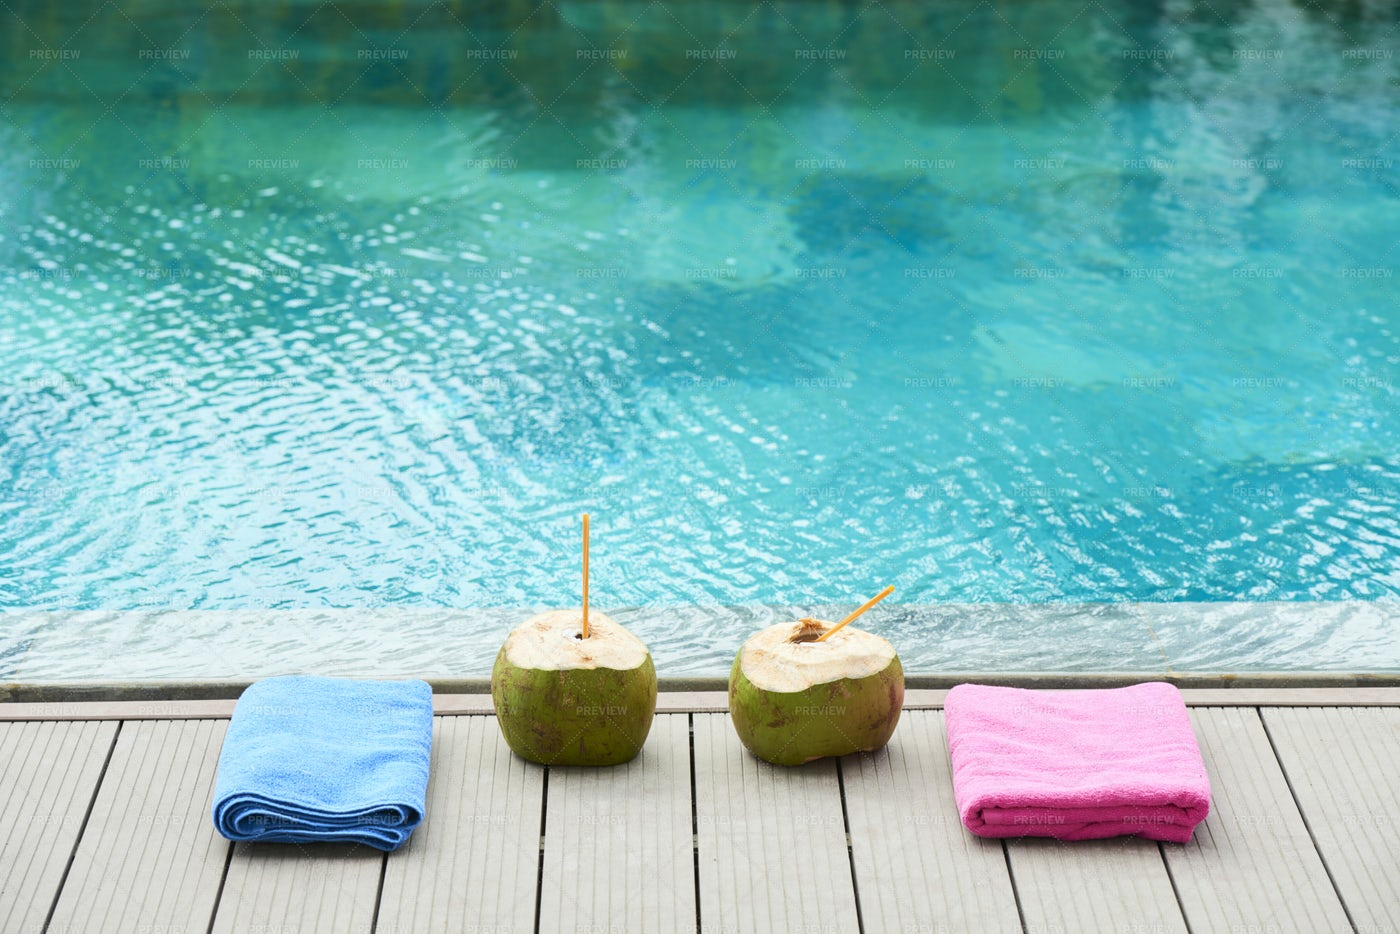 Two Coconut Drinks Near The Pool: Stock Photos